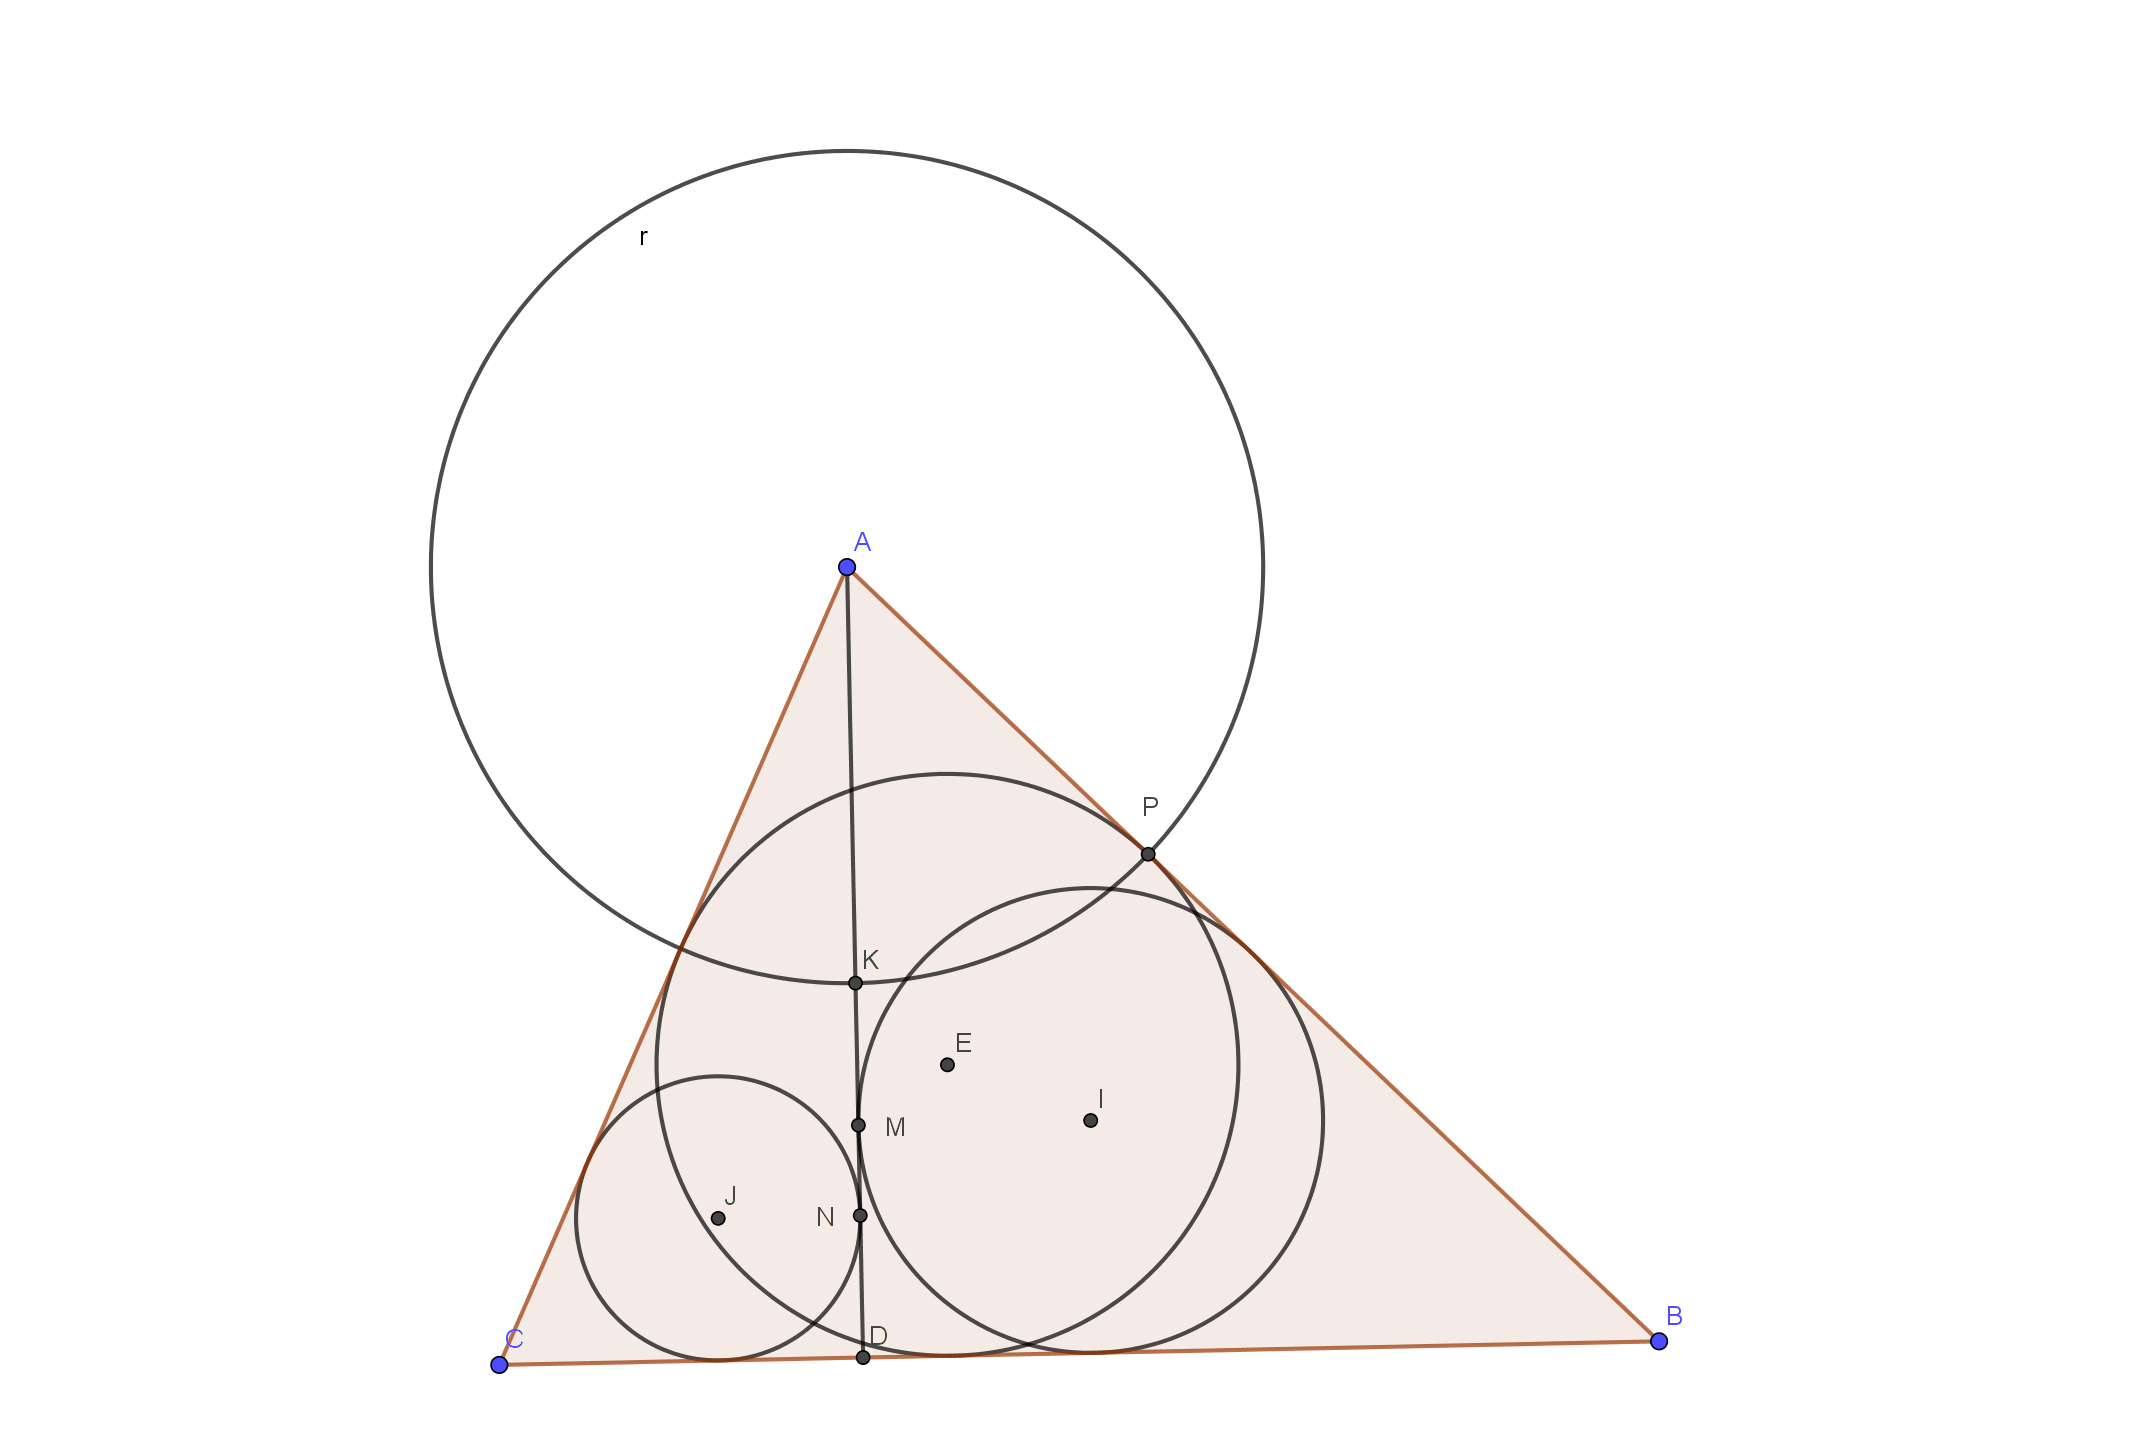 Hard geometry question (circles and triangles